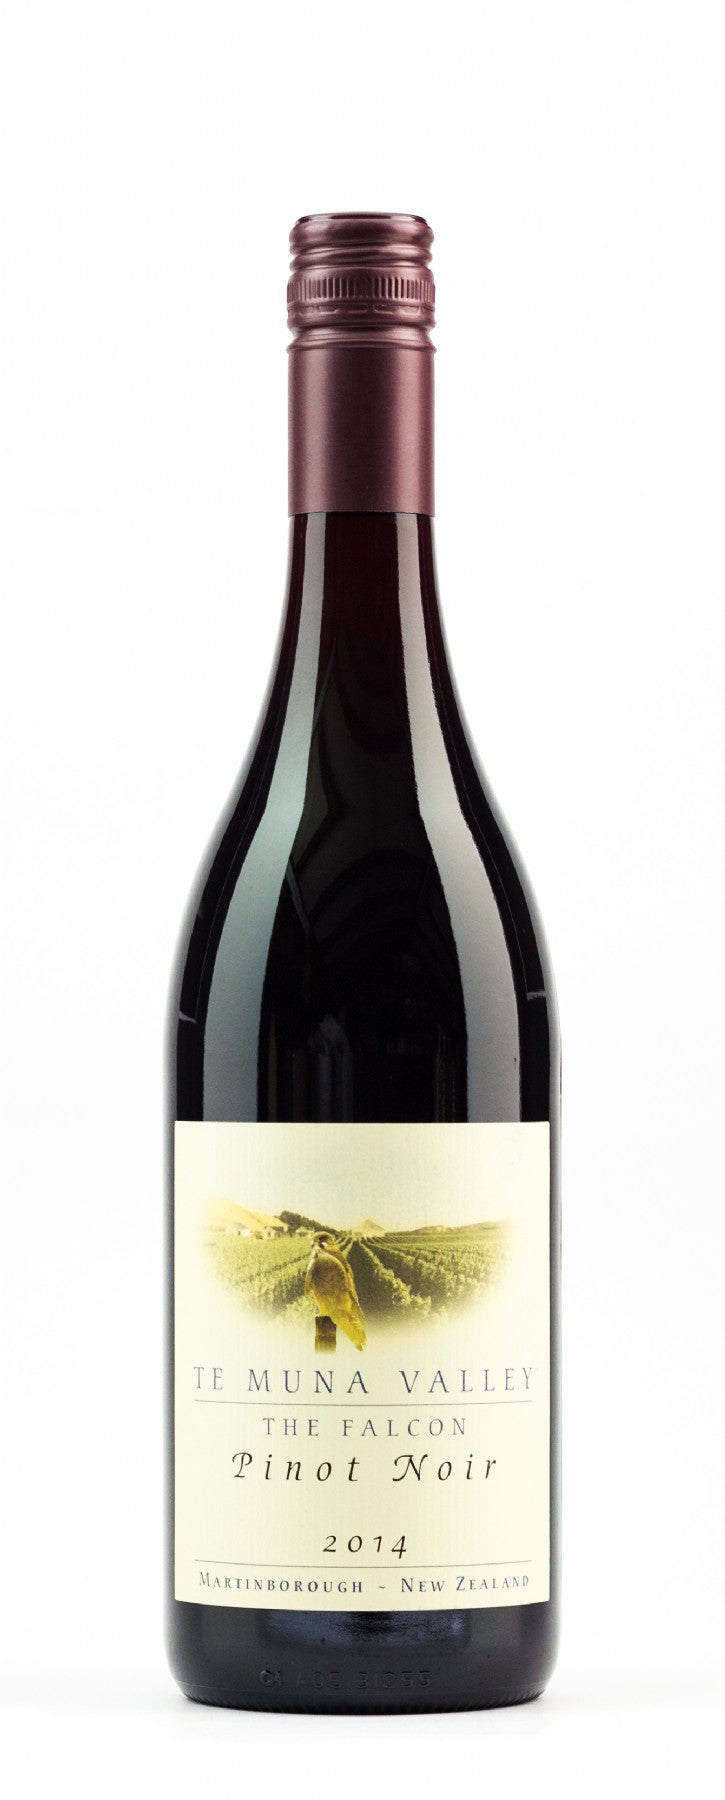 TE MUNA VALLEY PINOT NOIR THE FALCON 14